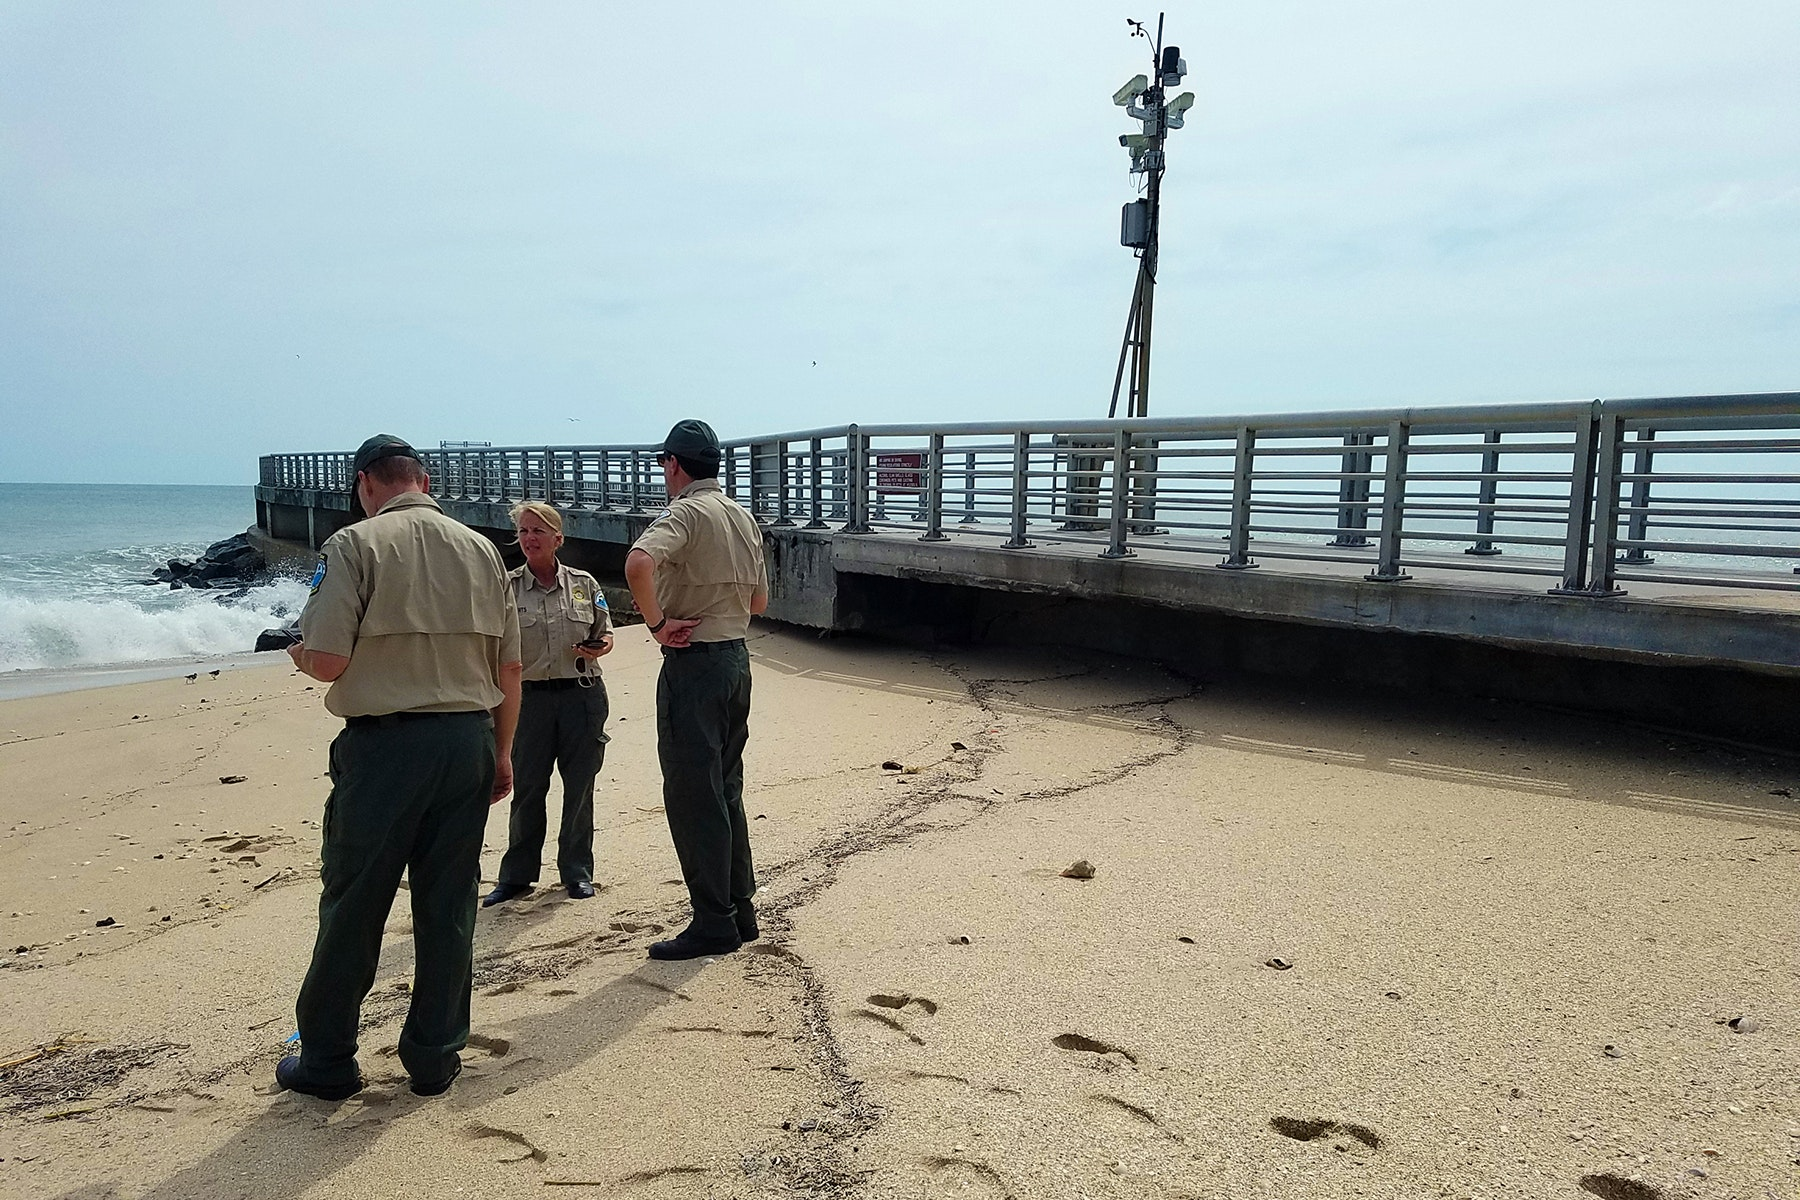 State Park officials inspecting the base of the North Jetty